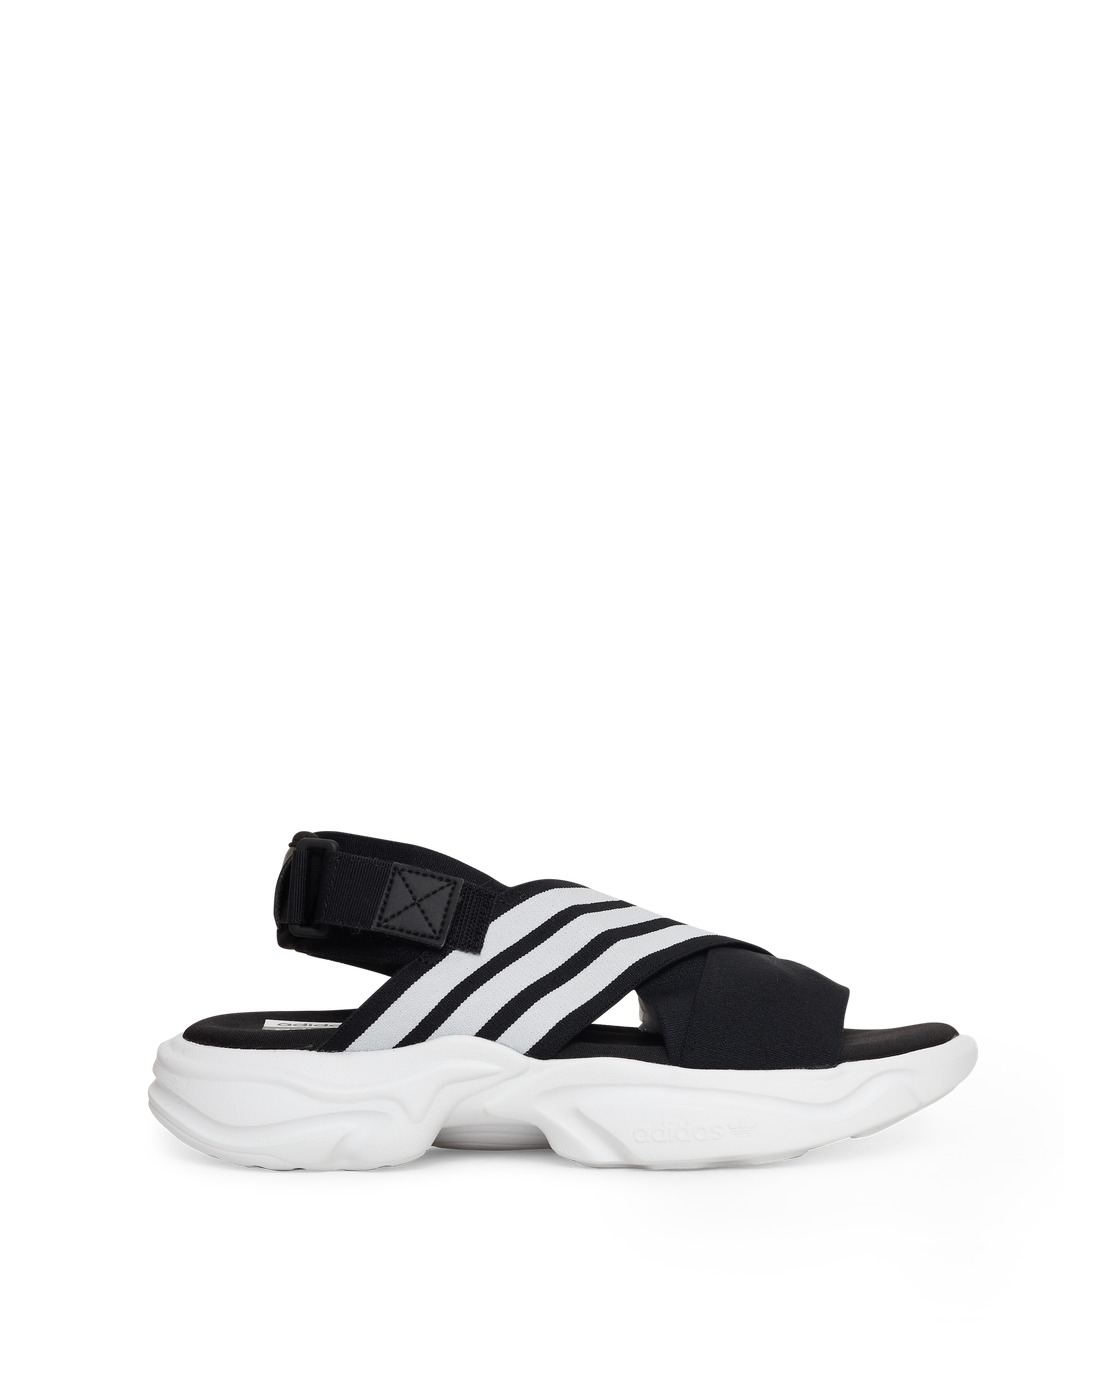 Adidas Originals Magmur Sandals Core Black/Ftwr White